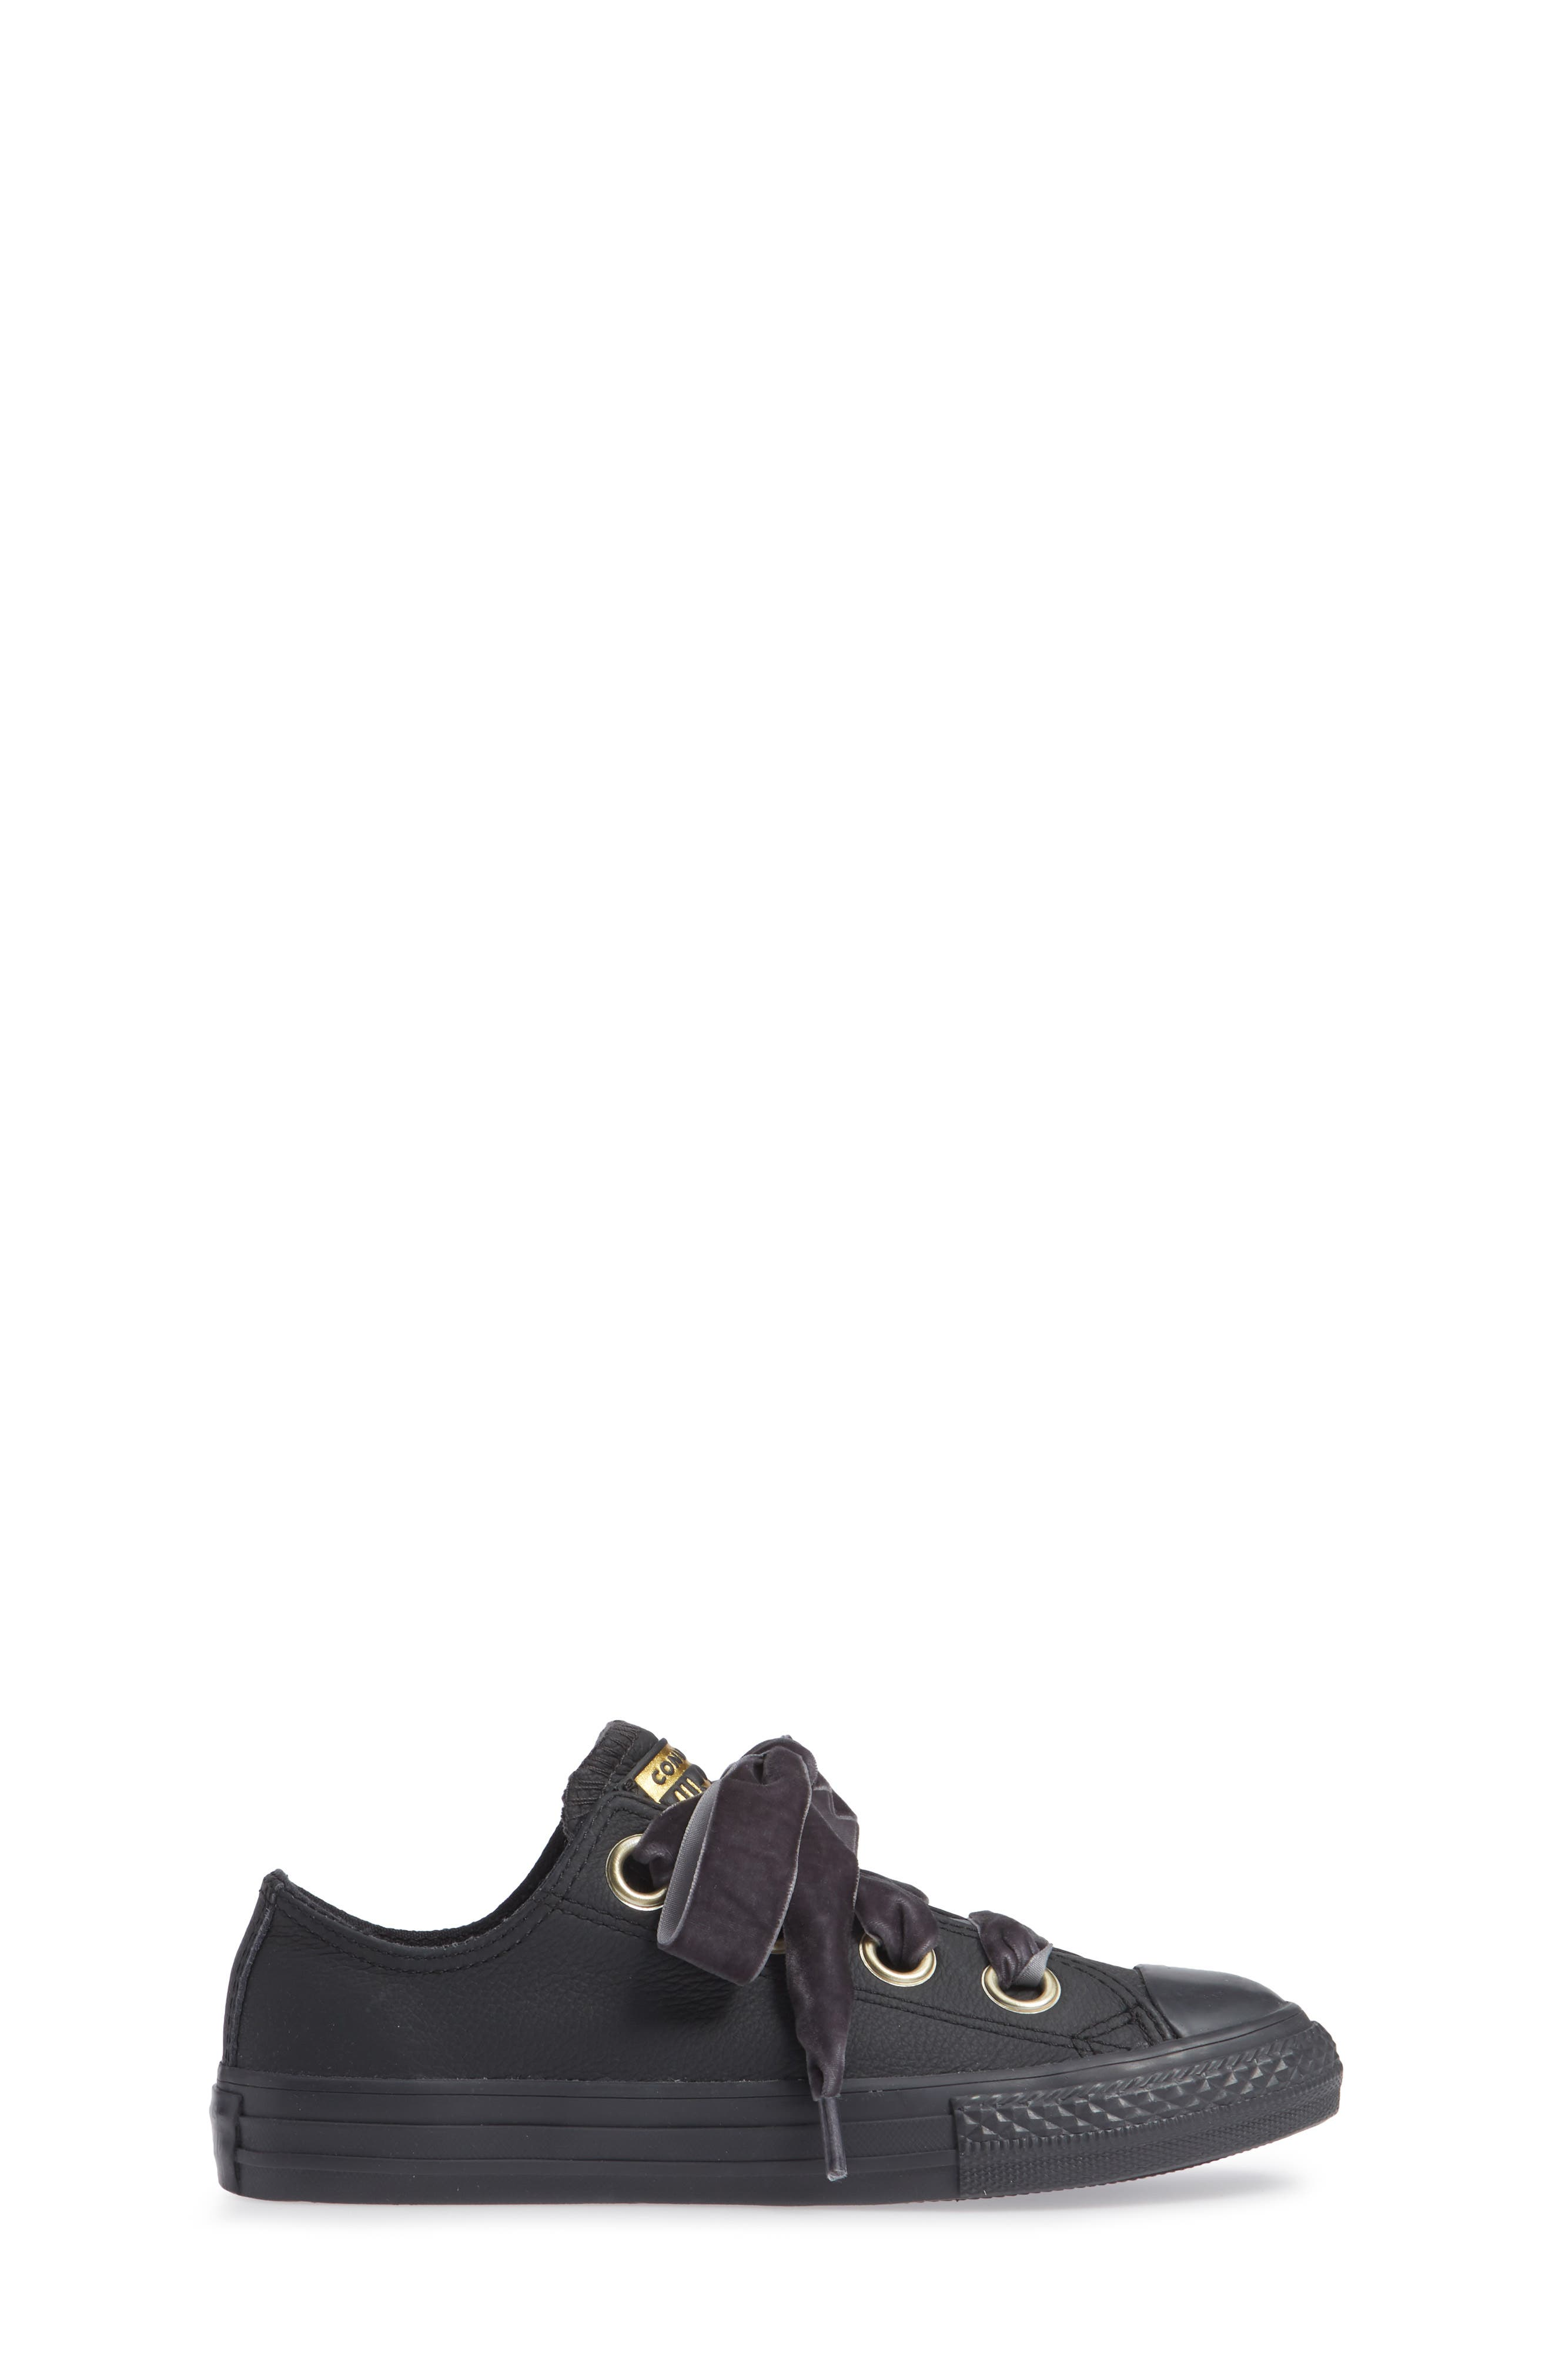 Chuck Taylor<sup>®</sup> All Star<sup>®</sup> Big Eyelet Leather Sneaker,                             Alternate thumbnail 3, color,                             BLACK